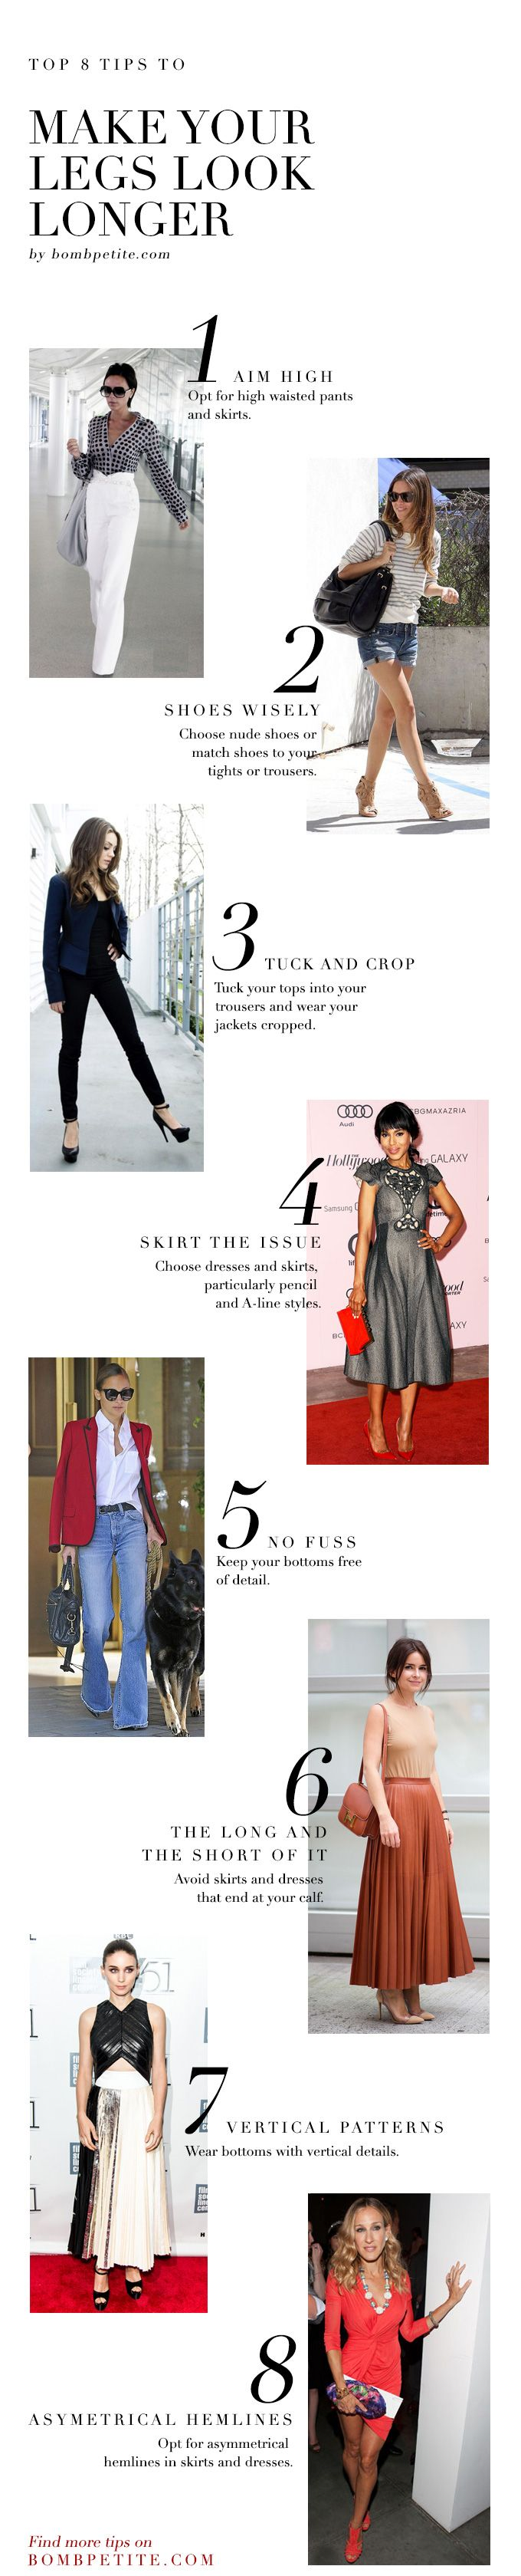 Top 8 Tips to Make your Legs look longer | Petite dresses, style tips, trends, designers, celebrities and beautiful clothing for petite women.The ultimate petite fashion resource. — BombPetite.com